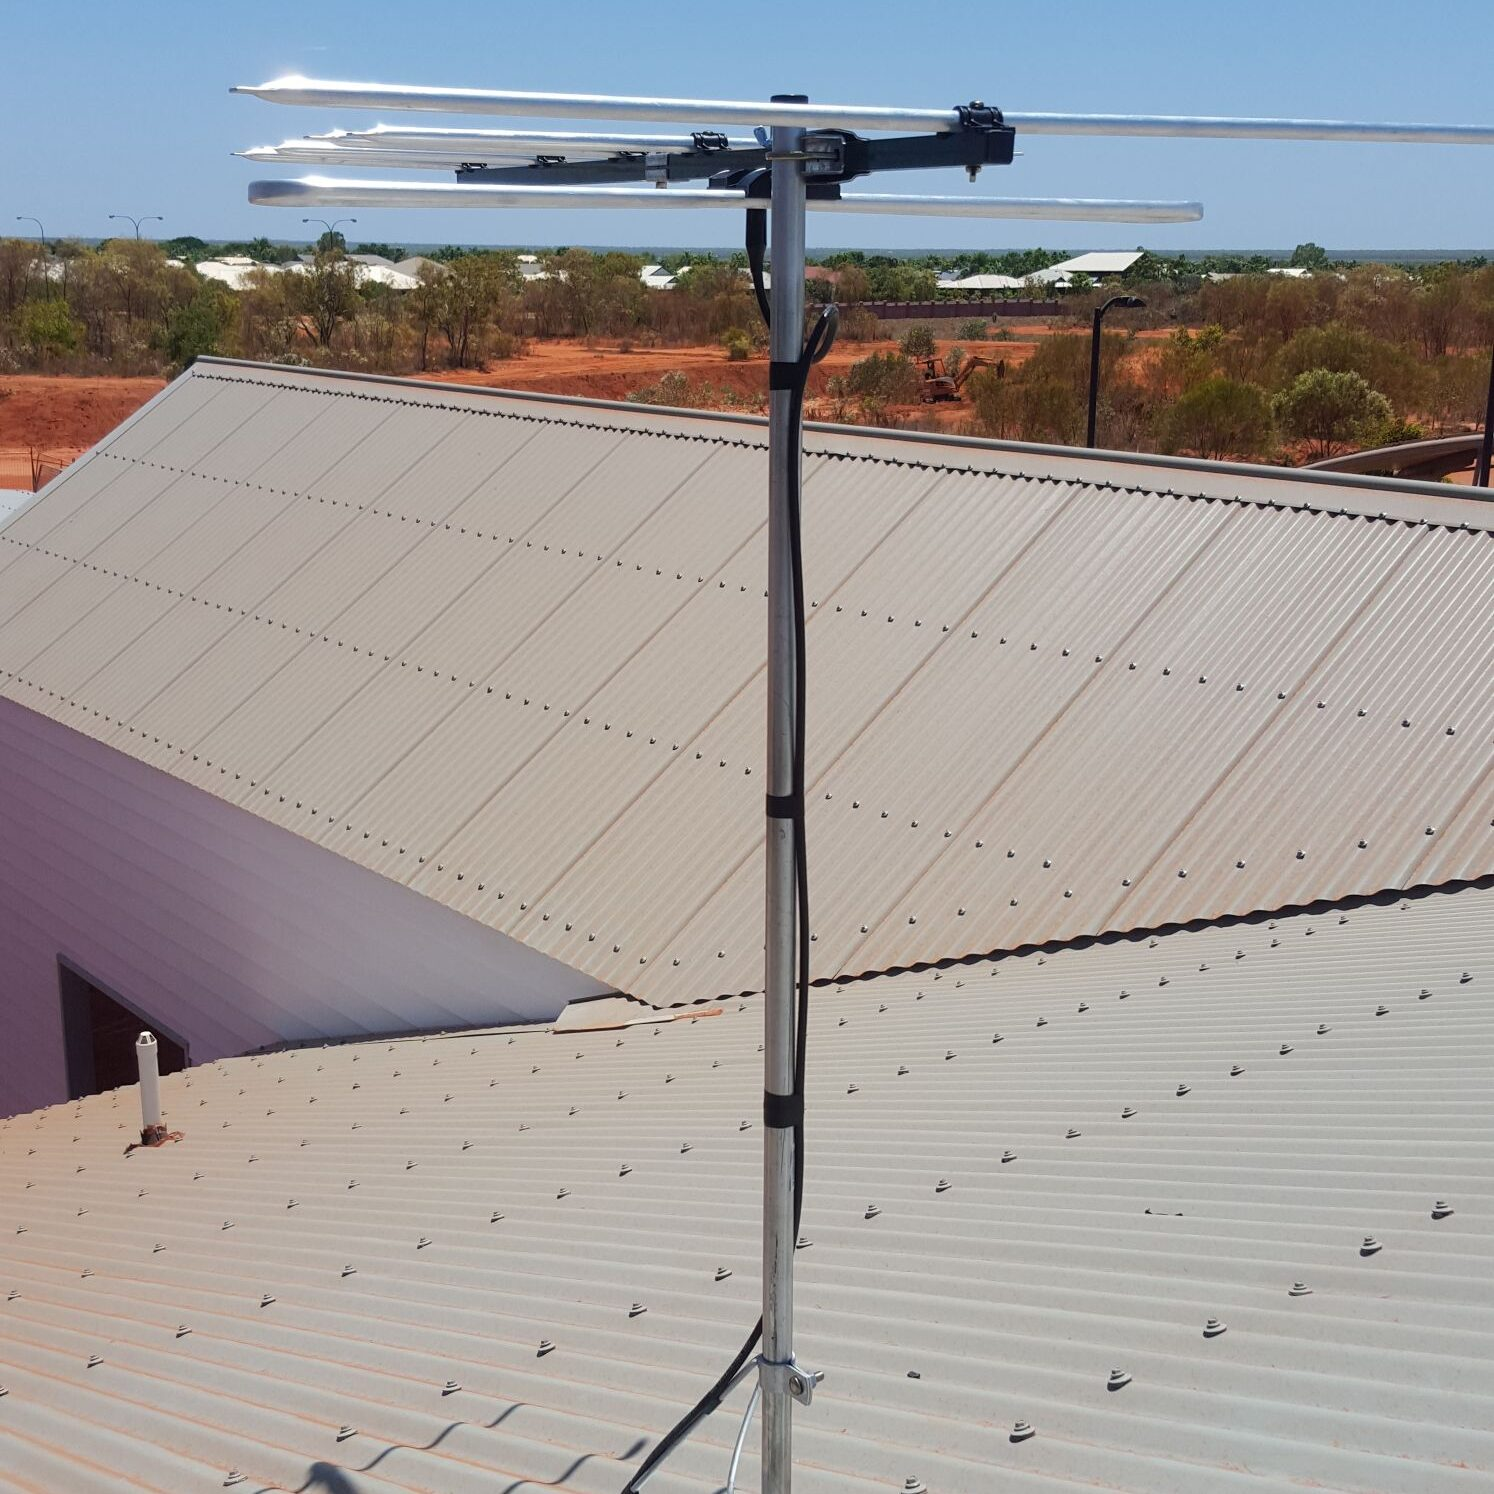 New Broome RFDS building Antenna system